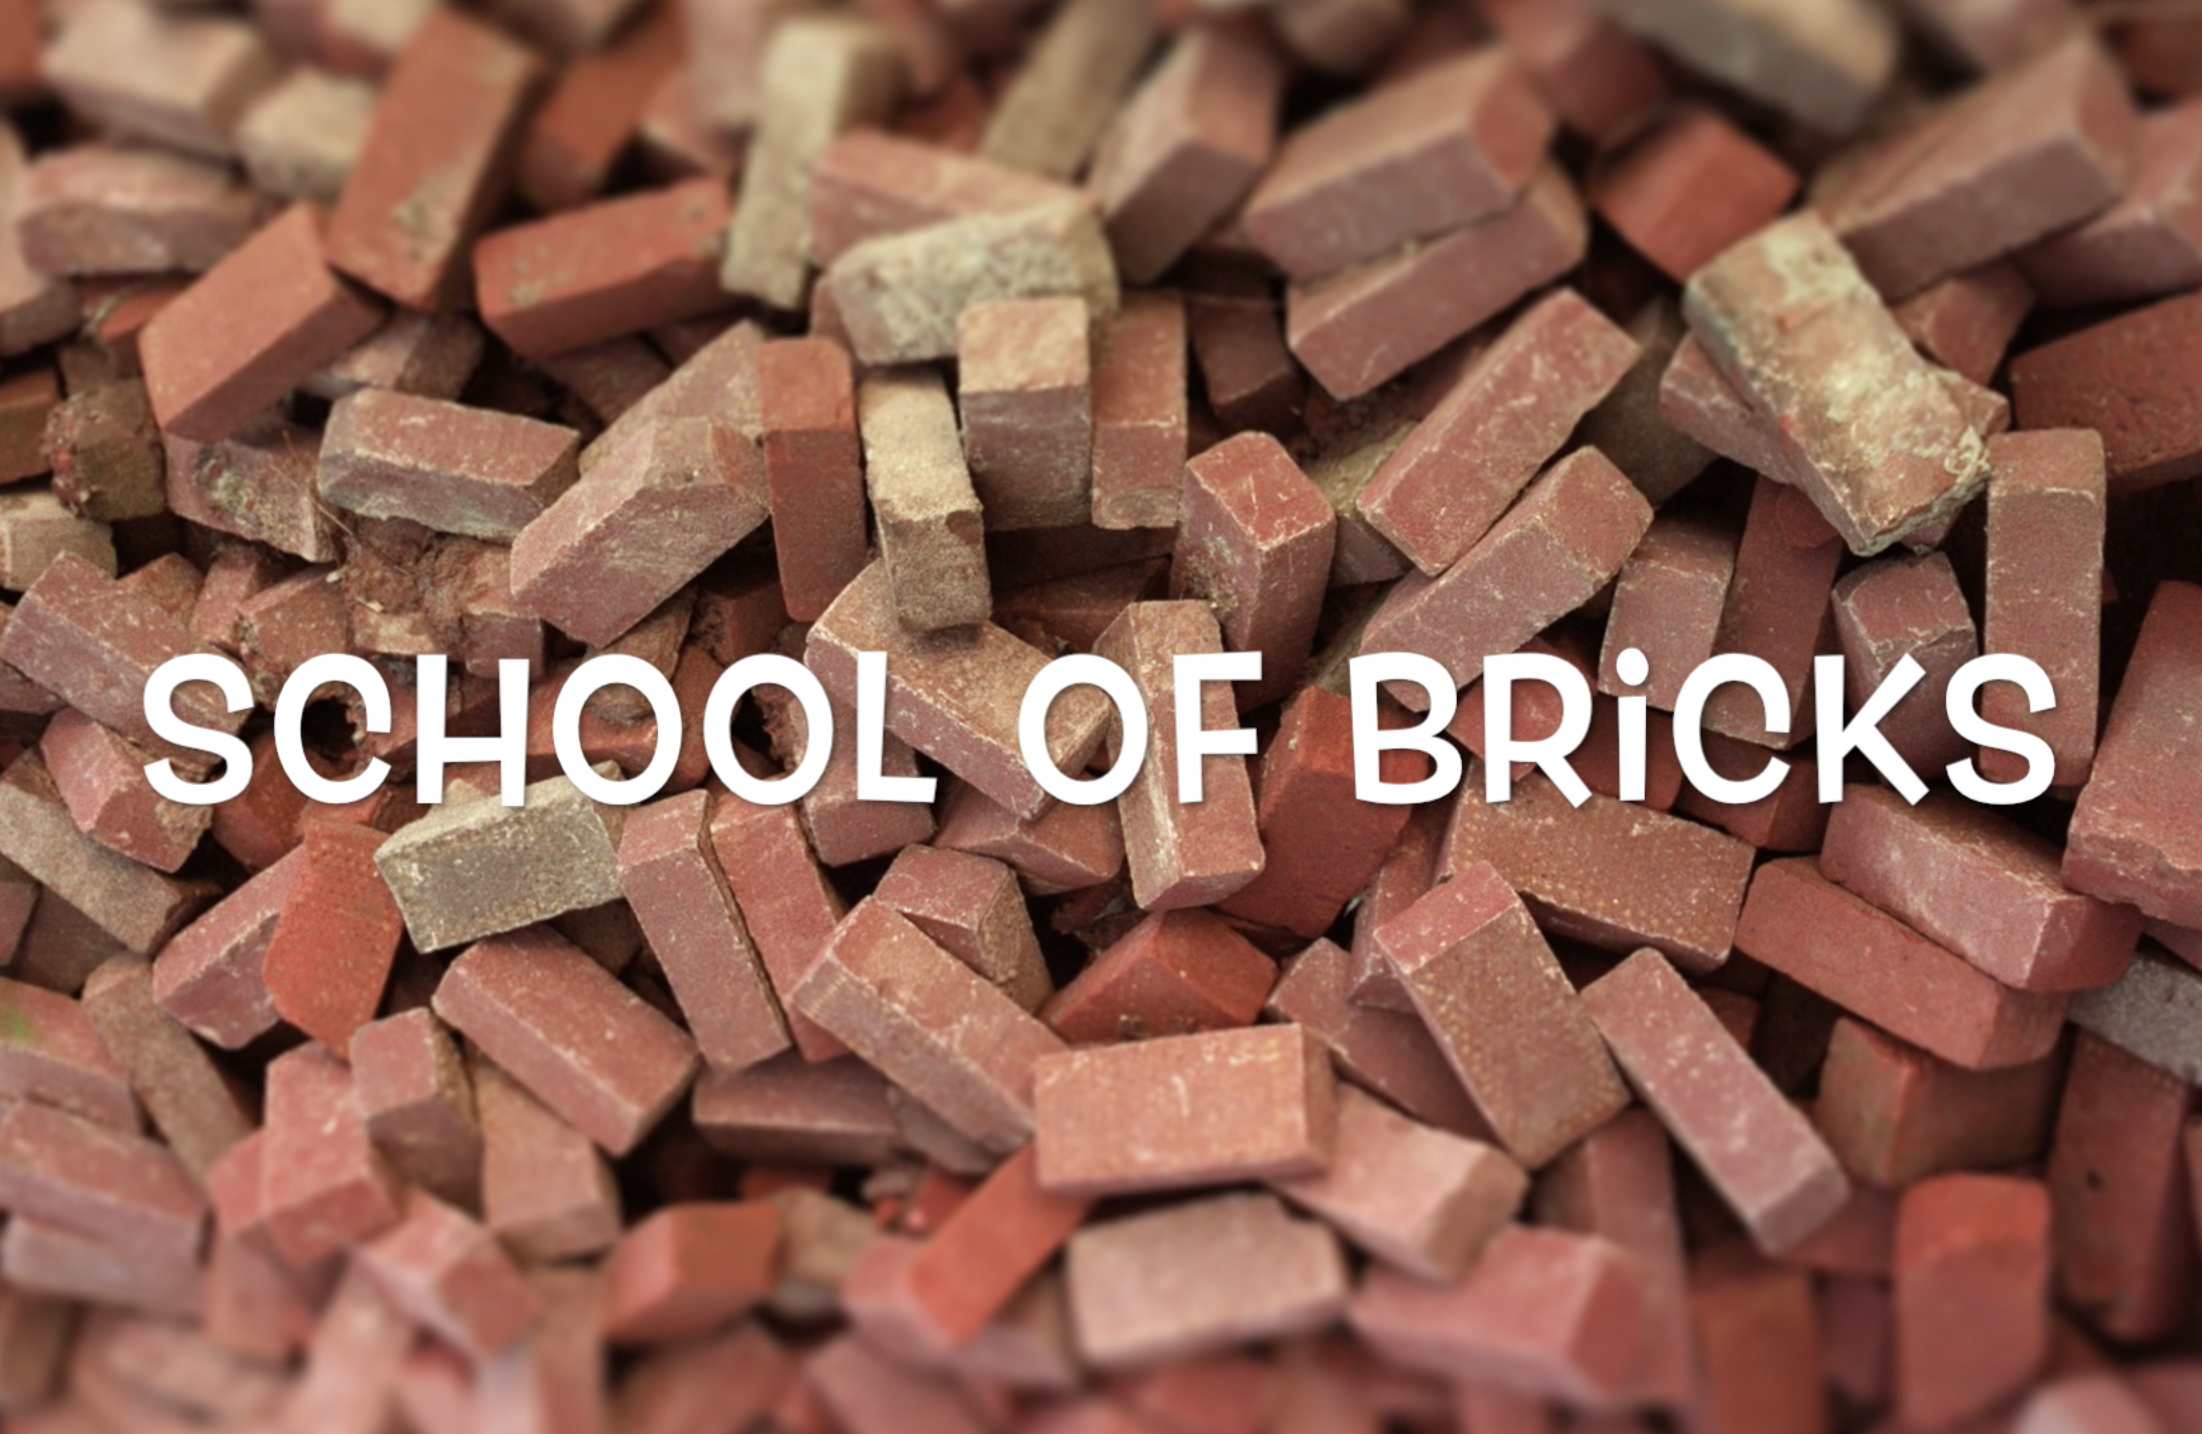 School of Bricks